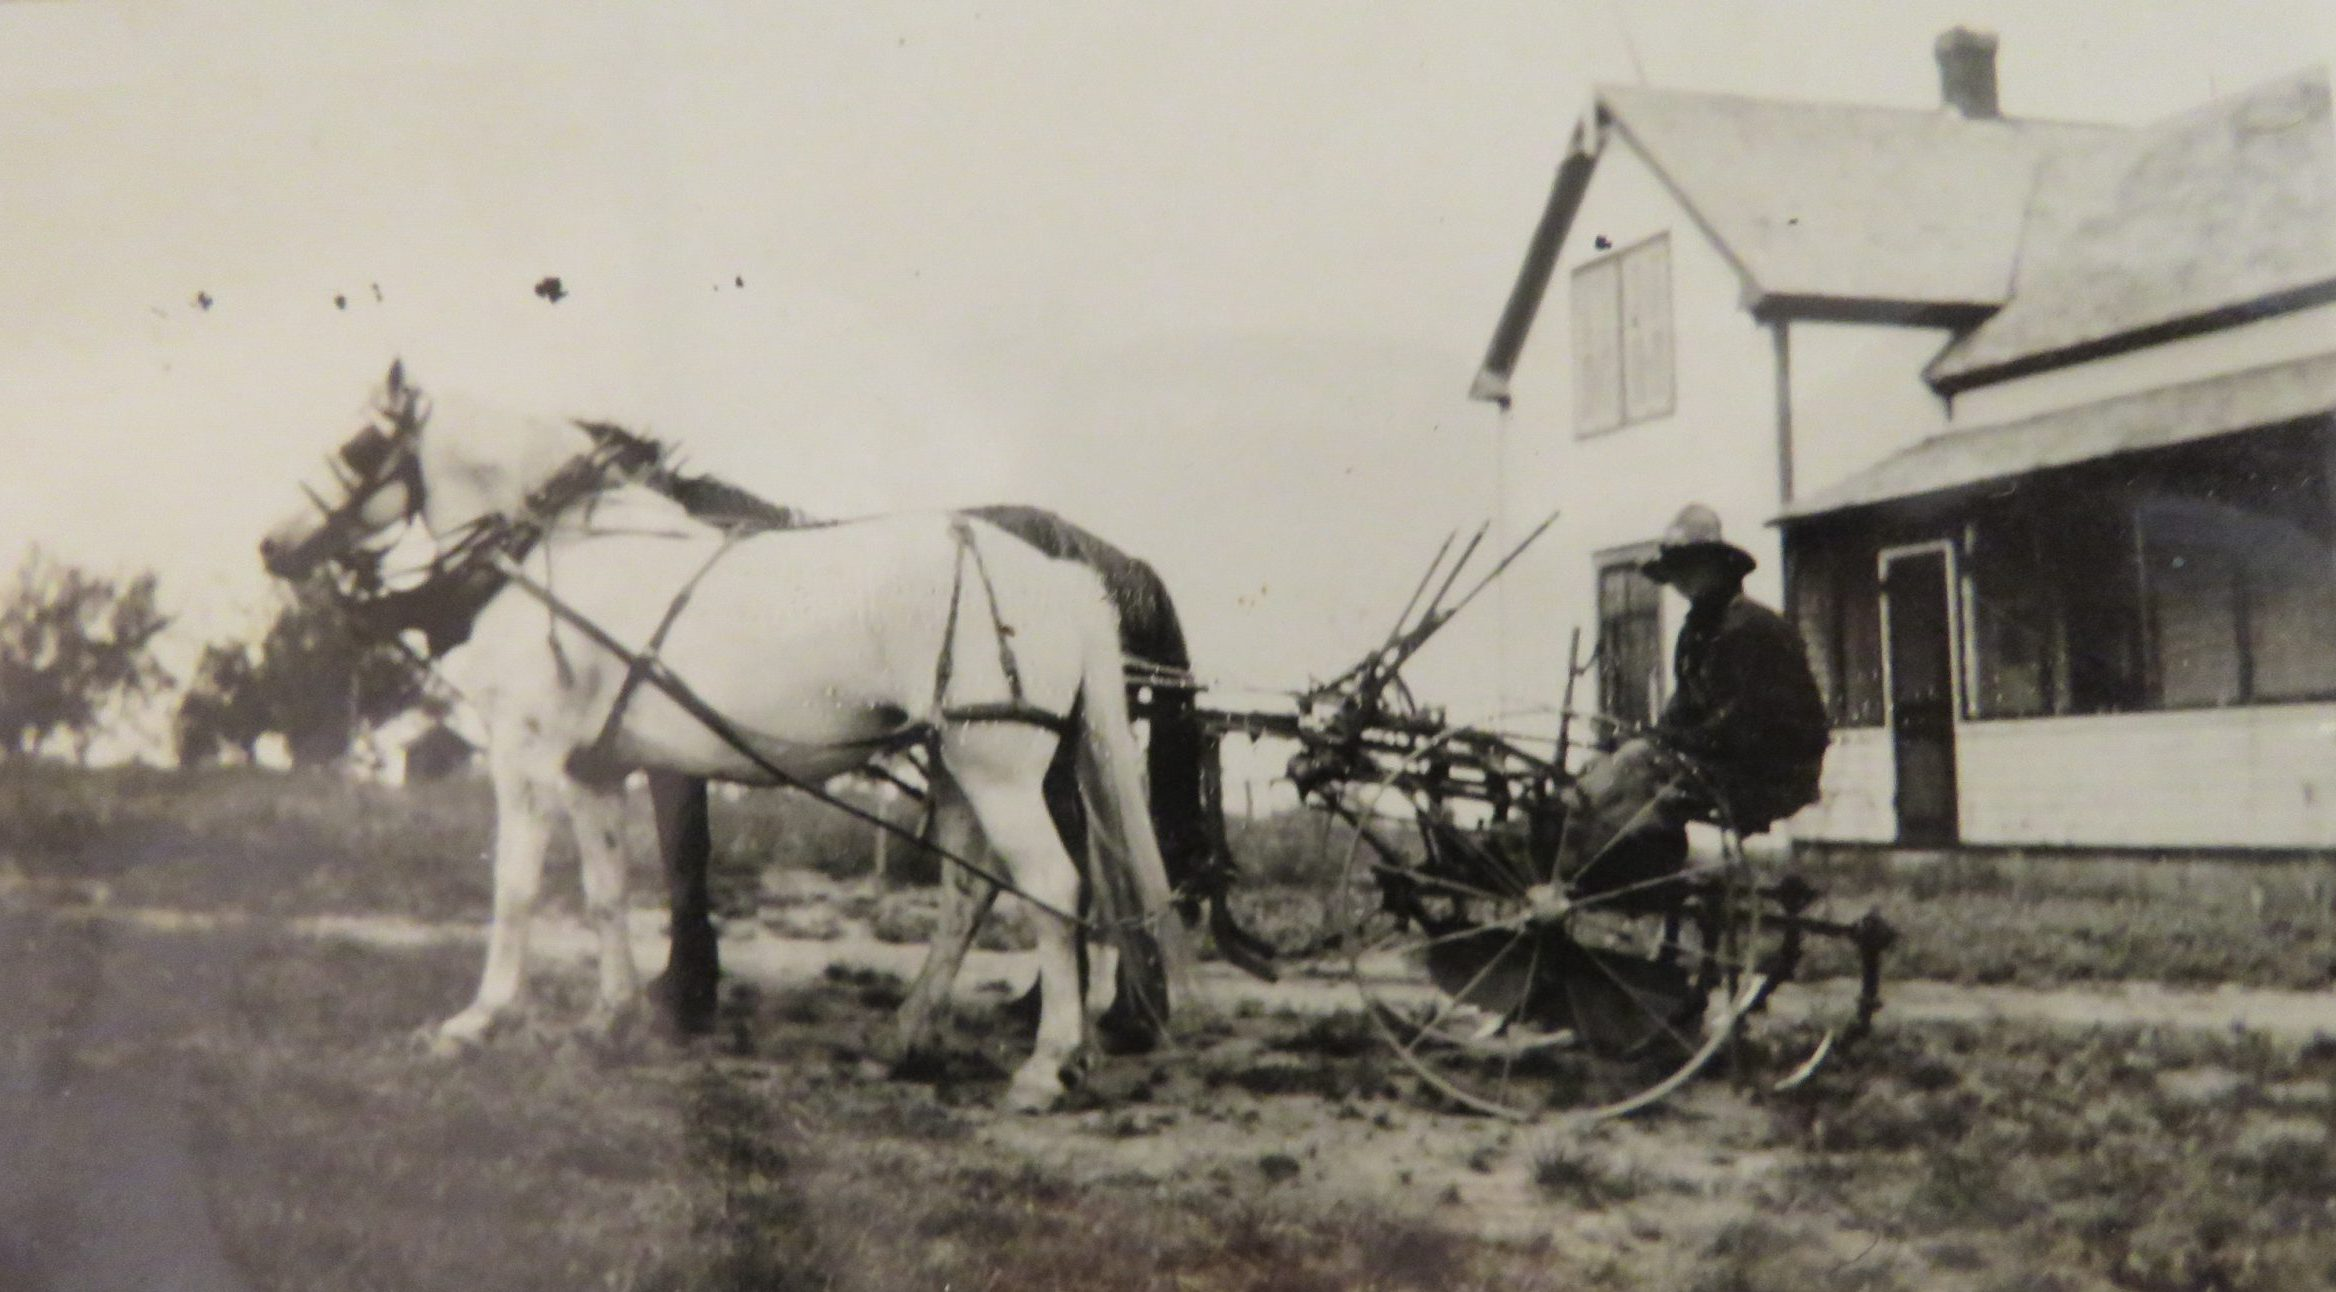 Vanderbrink - Krinke Collection - old pic of farming with horses